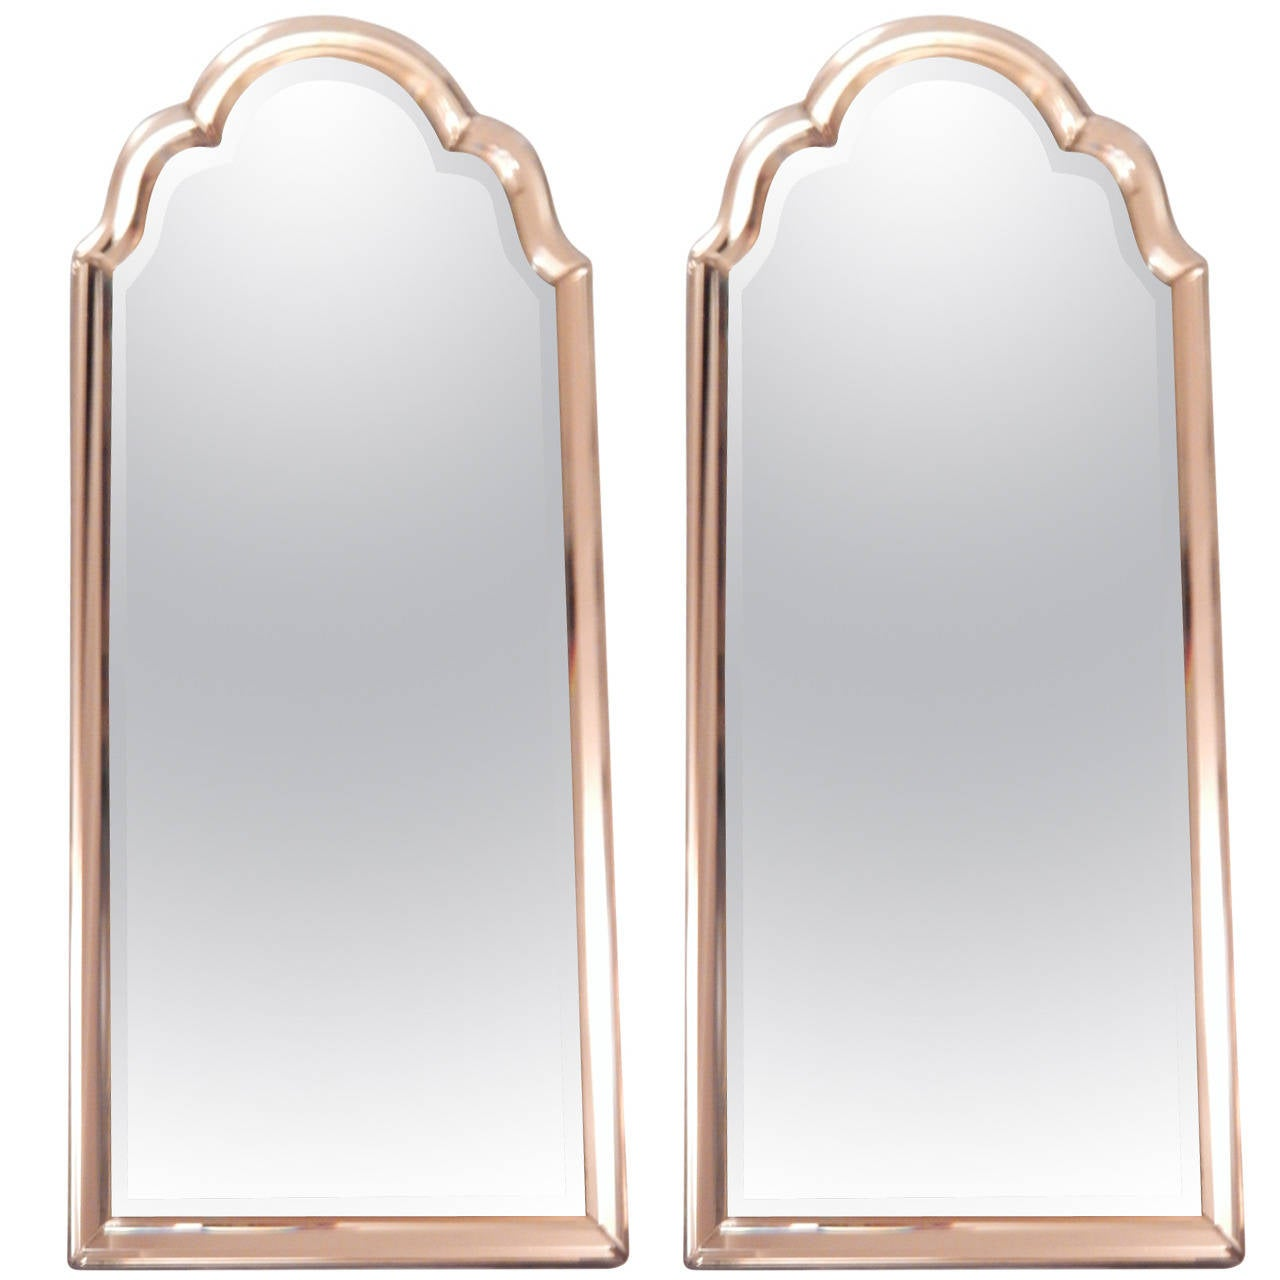 Arched gilt mirror at 1stdibs - Pair Of Venetian Style Mirror Framed Mirrors 1